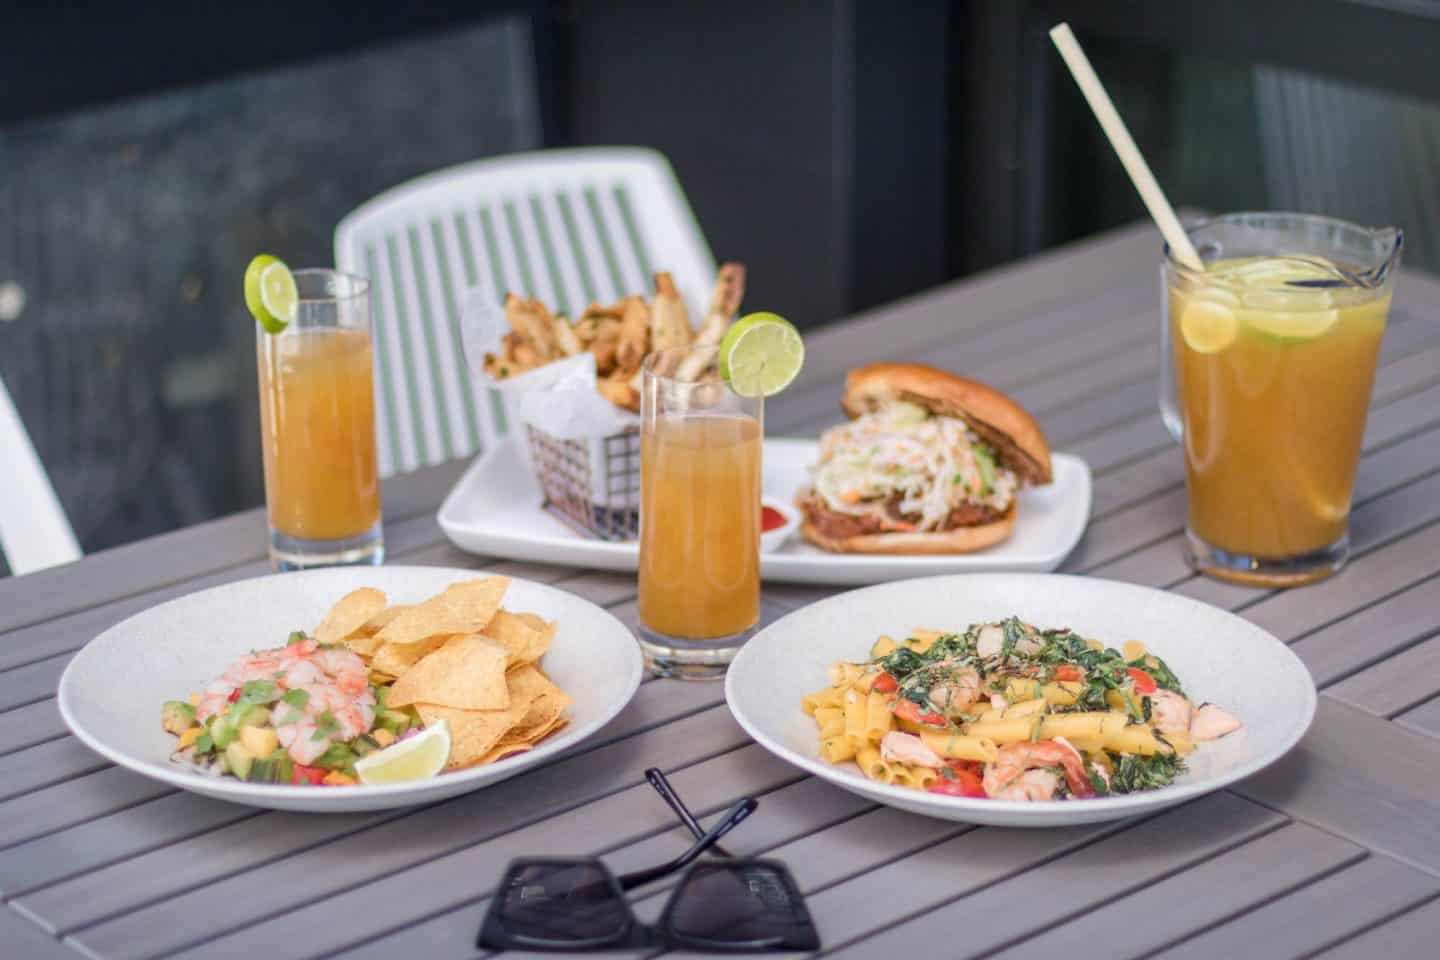 Rec Room Square One | best summer patios in Mississauga, Ontario | where to eat at the Square One Shopping Centre | top restaurants in the GTA near Toronto | Sauga food spots | Diary of a Toronto Girl, a Canadian lifestyle blog